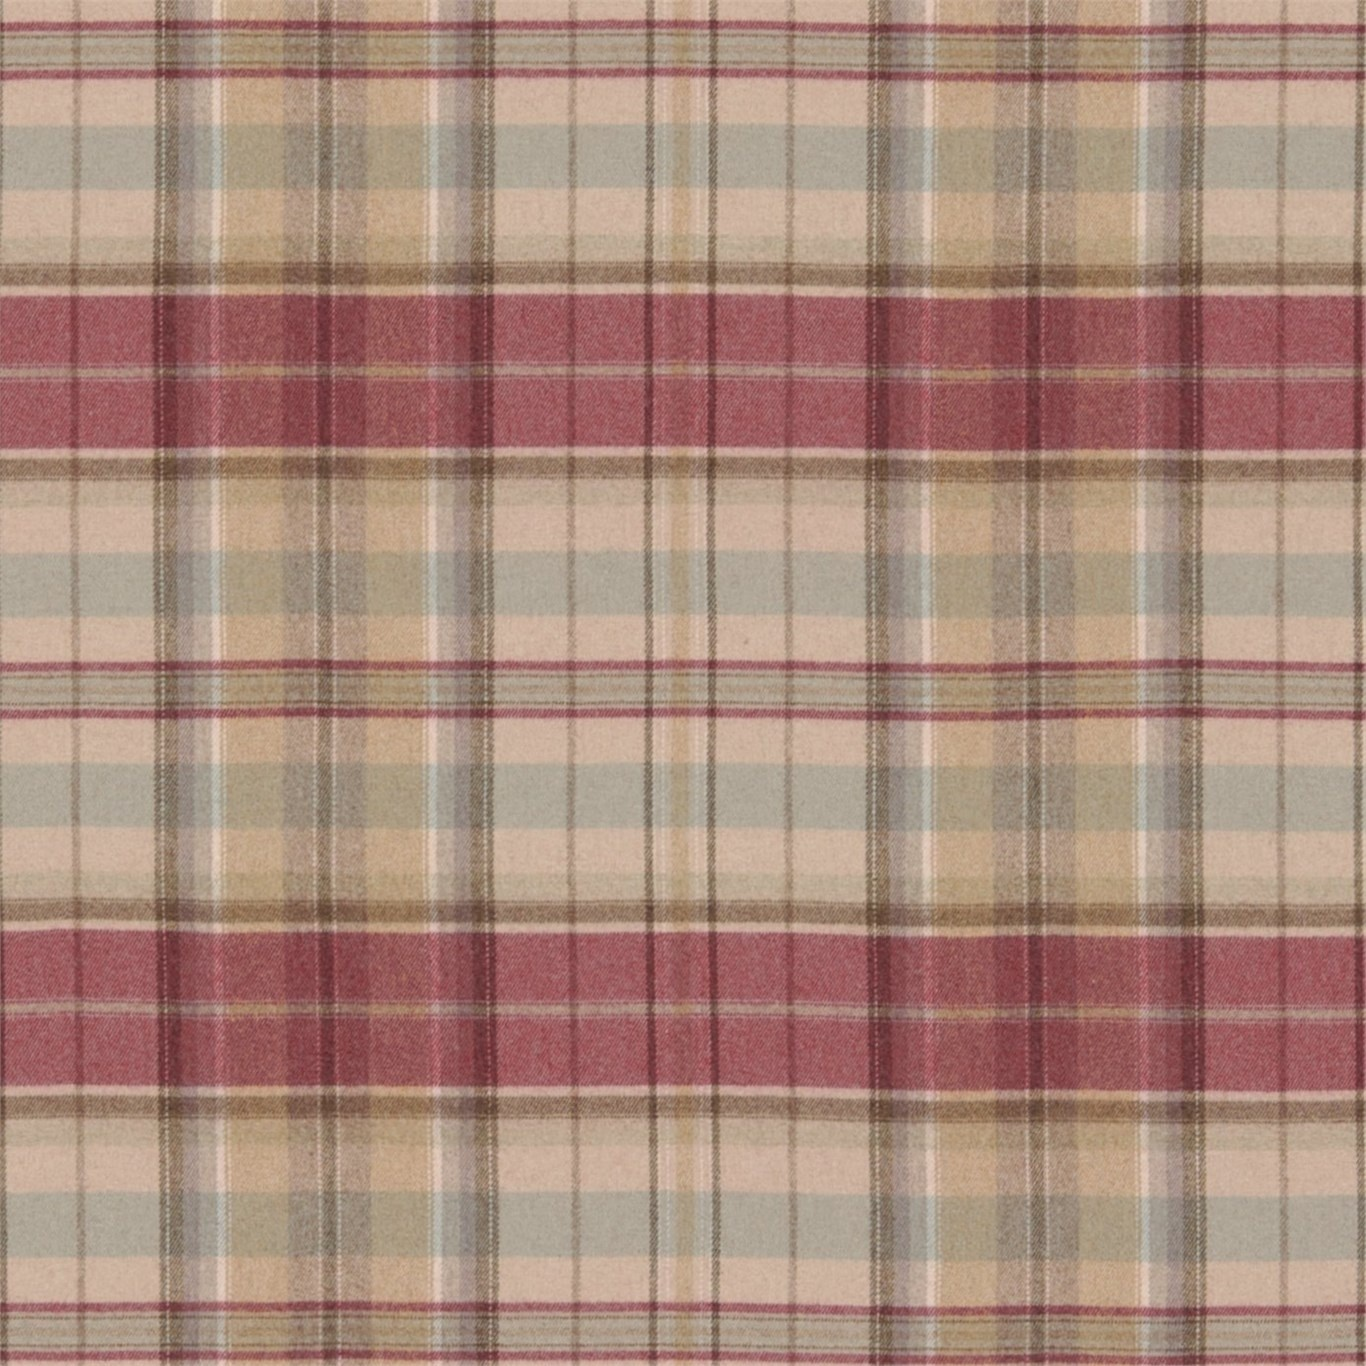 Image of Sanderson Byron Cherry/Biscuit Fabric 233243